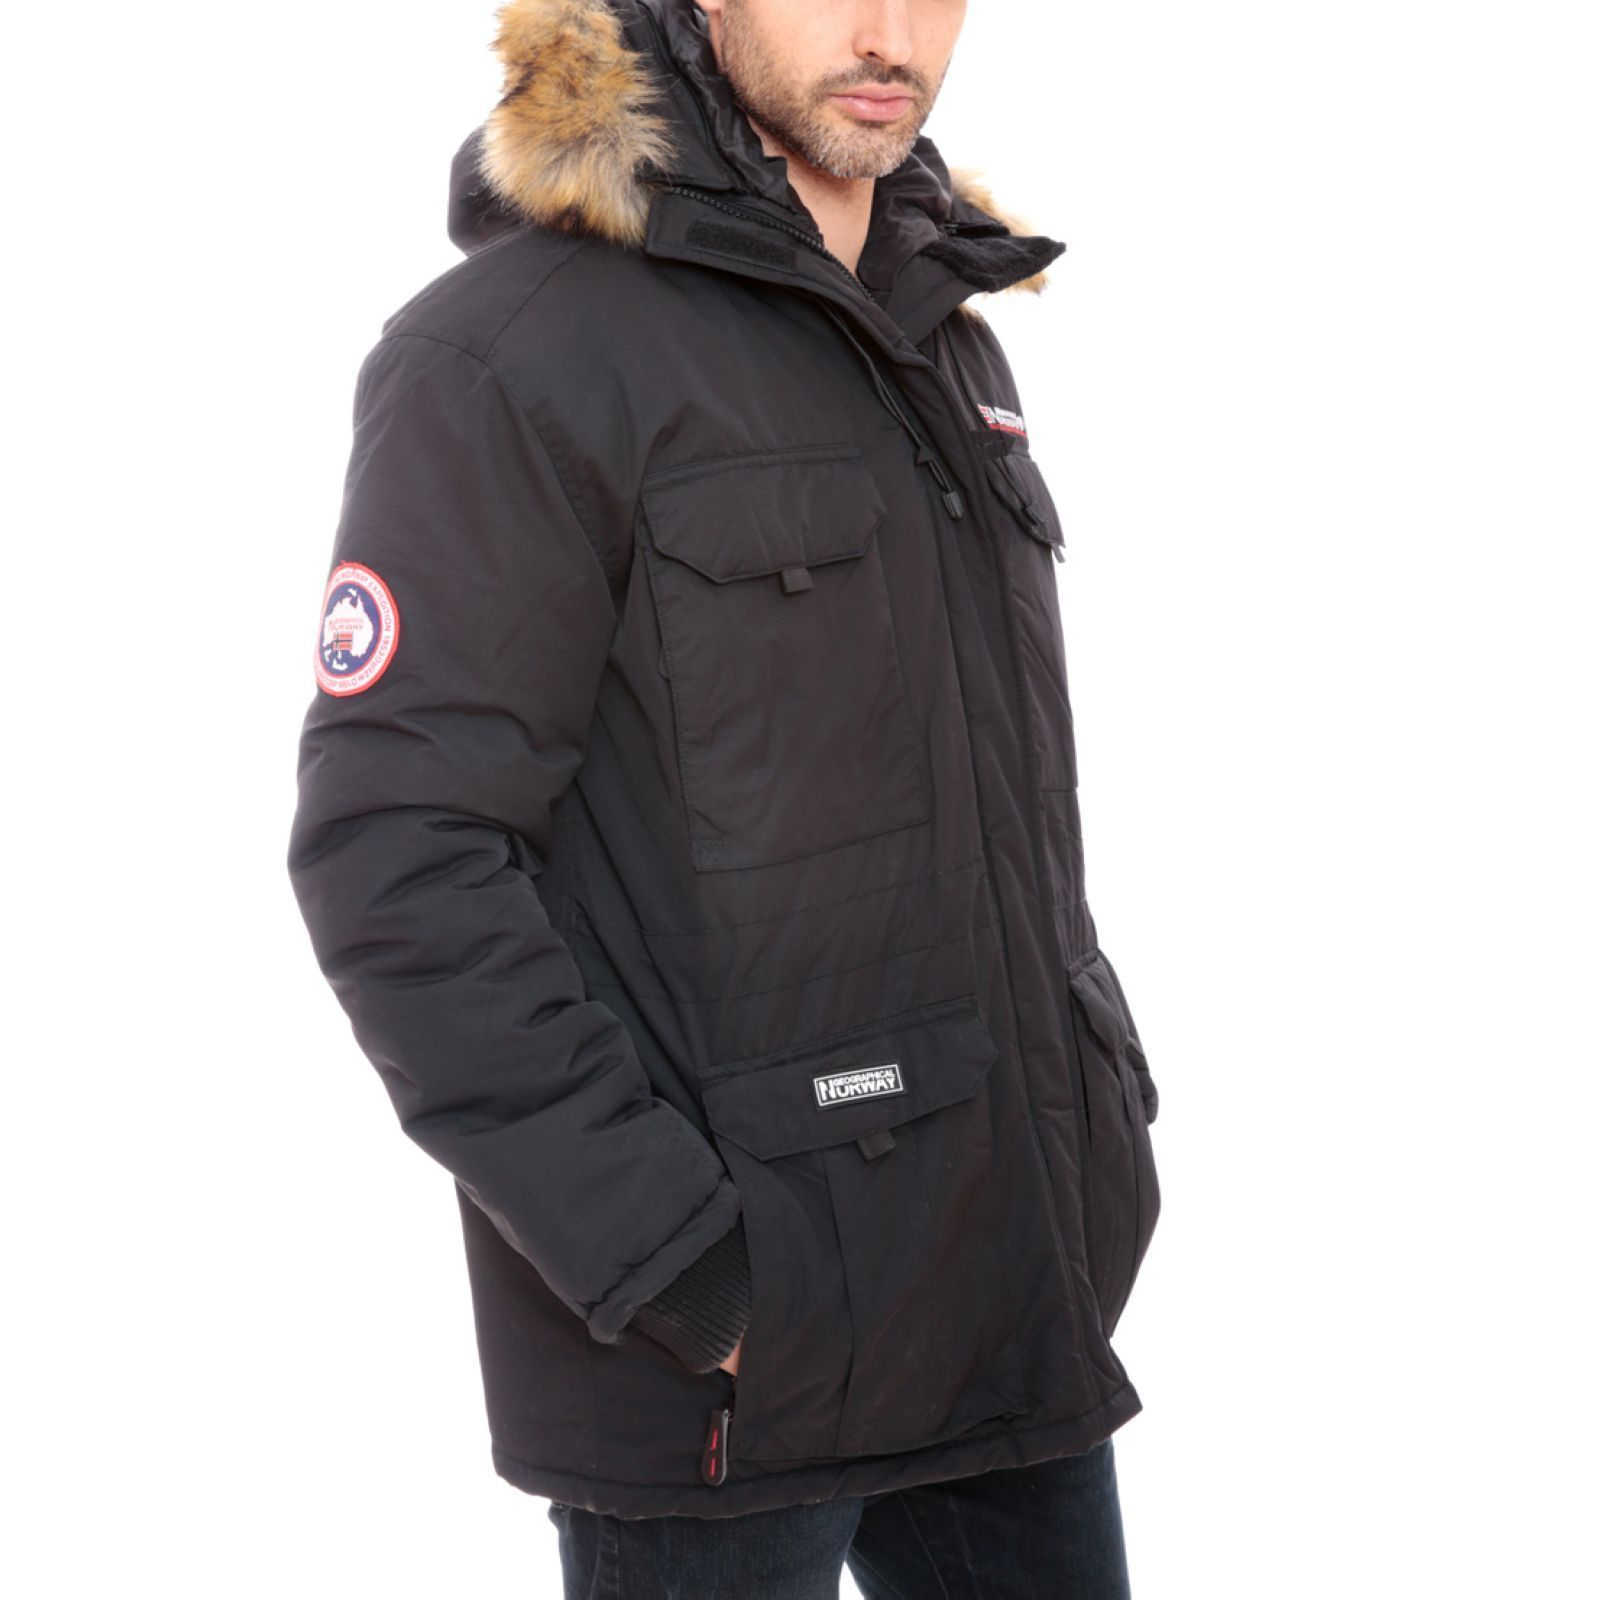 Norway ® Geographical España Parka Geographical Parka qxgwSCv